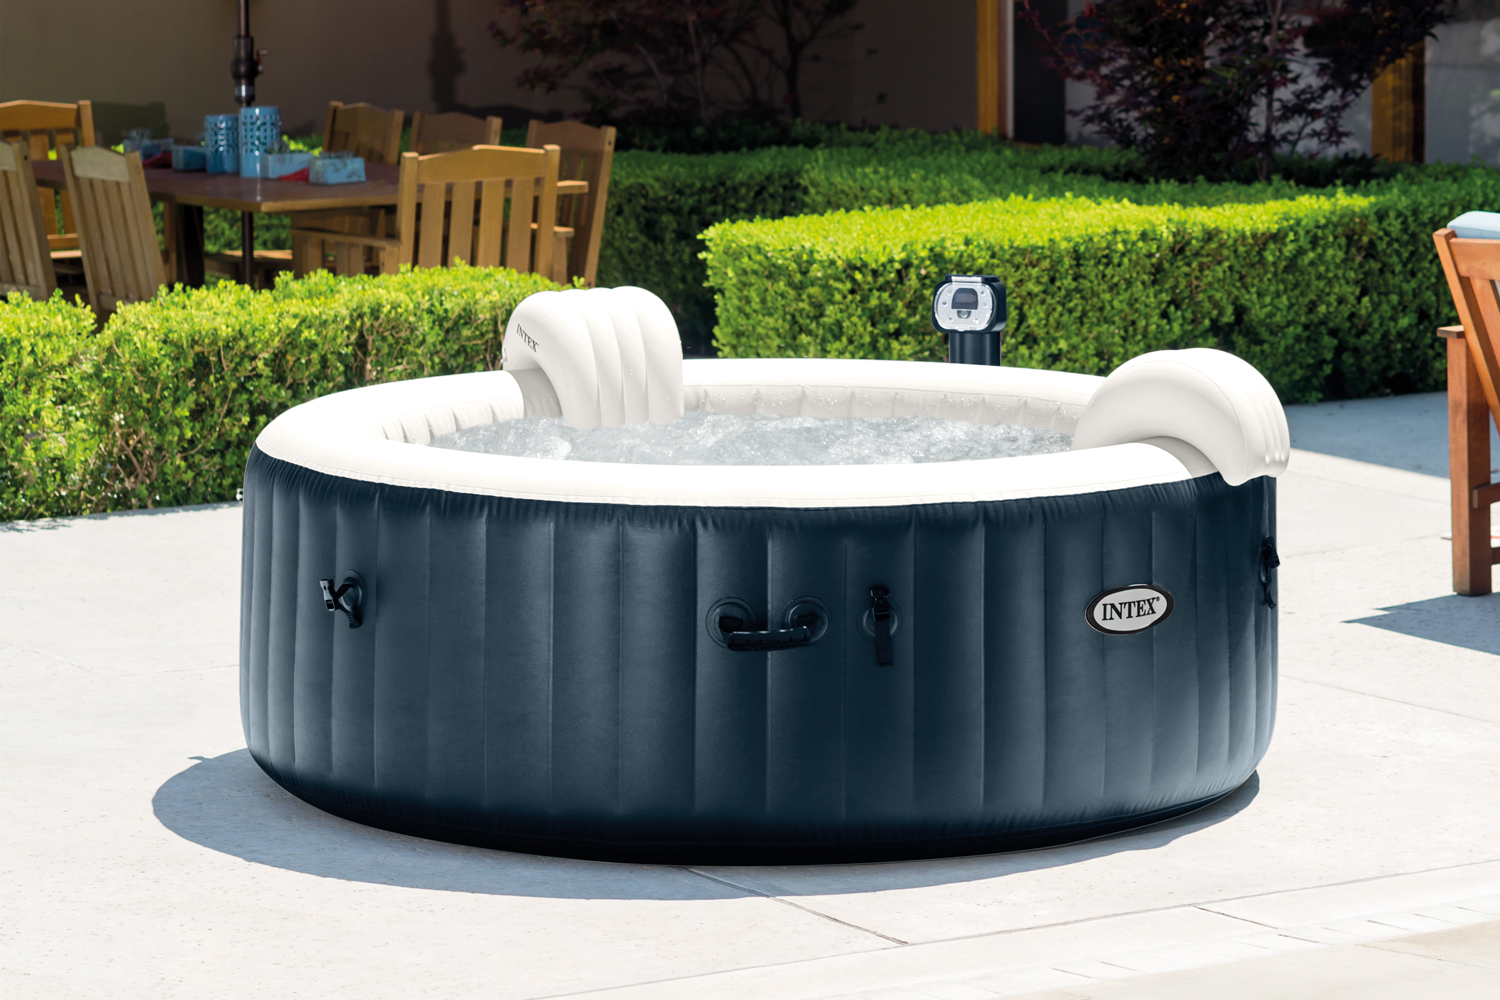 jetsetter tubs spa reasons alpine spas the spring love white highlife tub person nxt mocha to hot blog